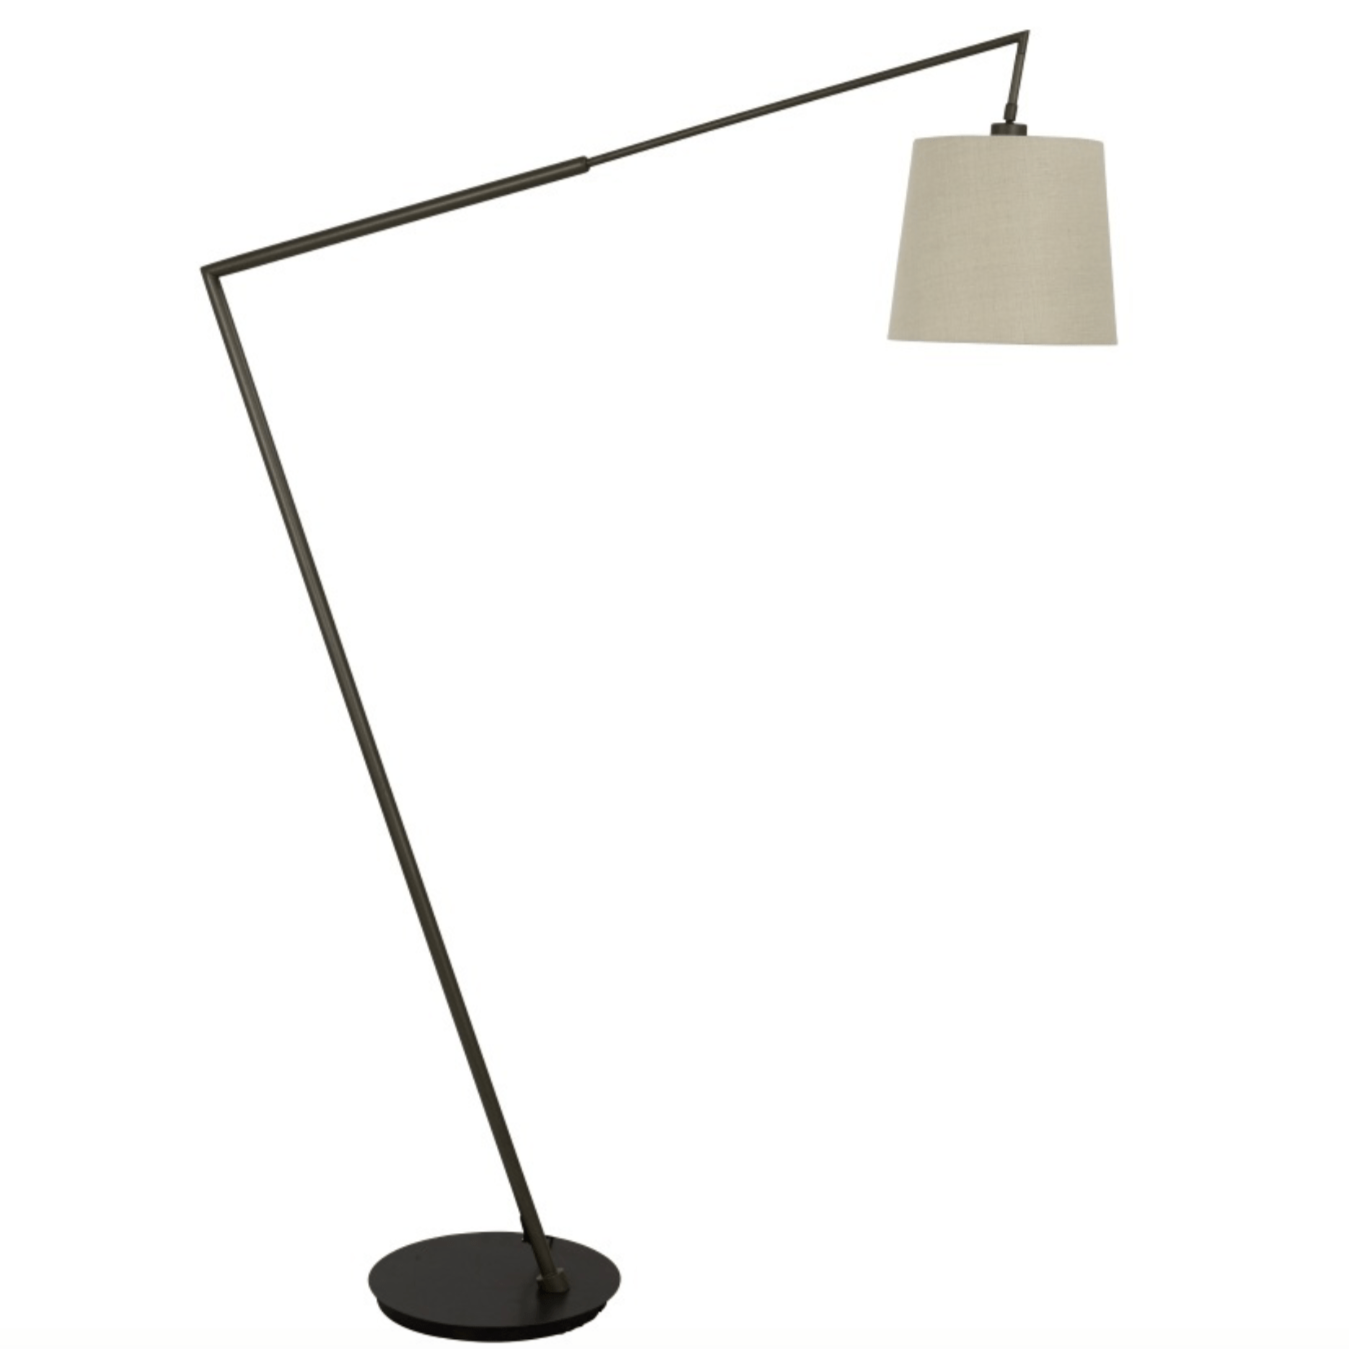 Angle Bronze Look Floor Lamp